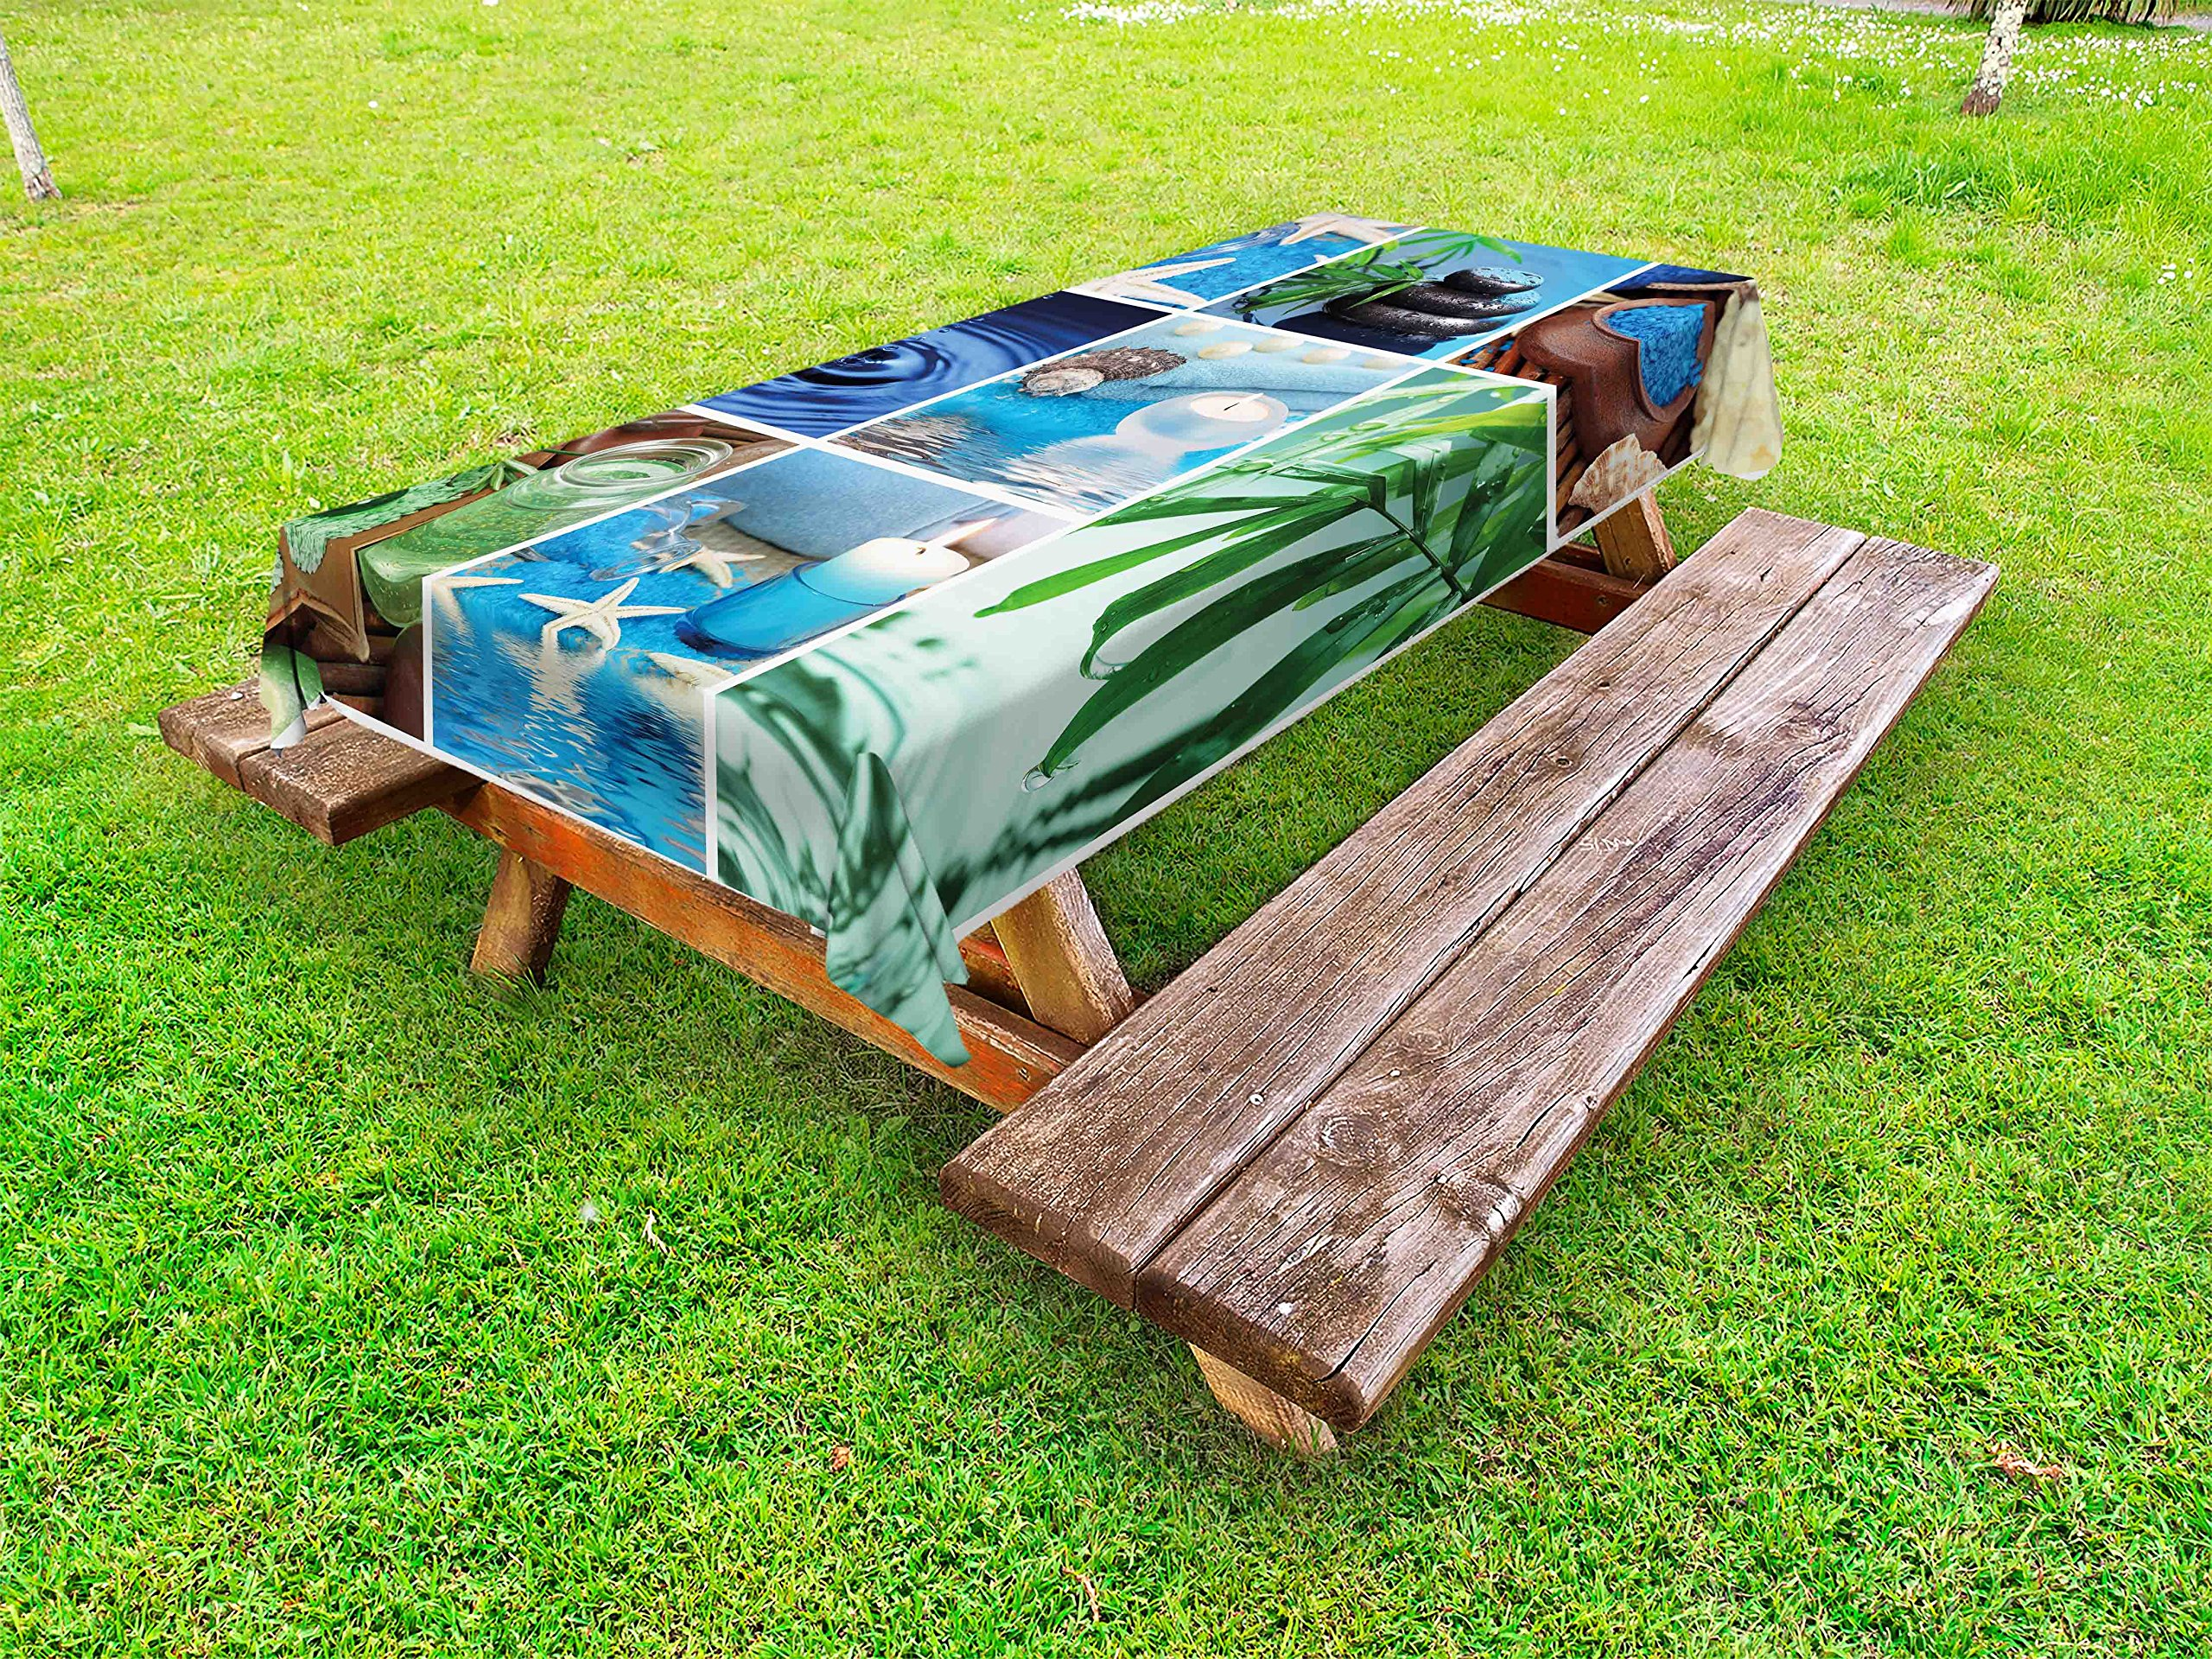 Lunarable Spa Outdoor Tablecloth, Ocean Themed Collage with Starfish Stone Botanic Plants Aqua and Candles Image, Decorative Washable Picnic Table Cloth, 58 X 104 inches, Blue and Green